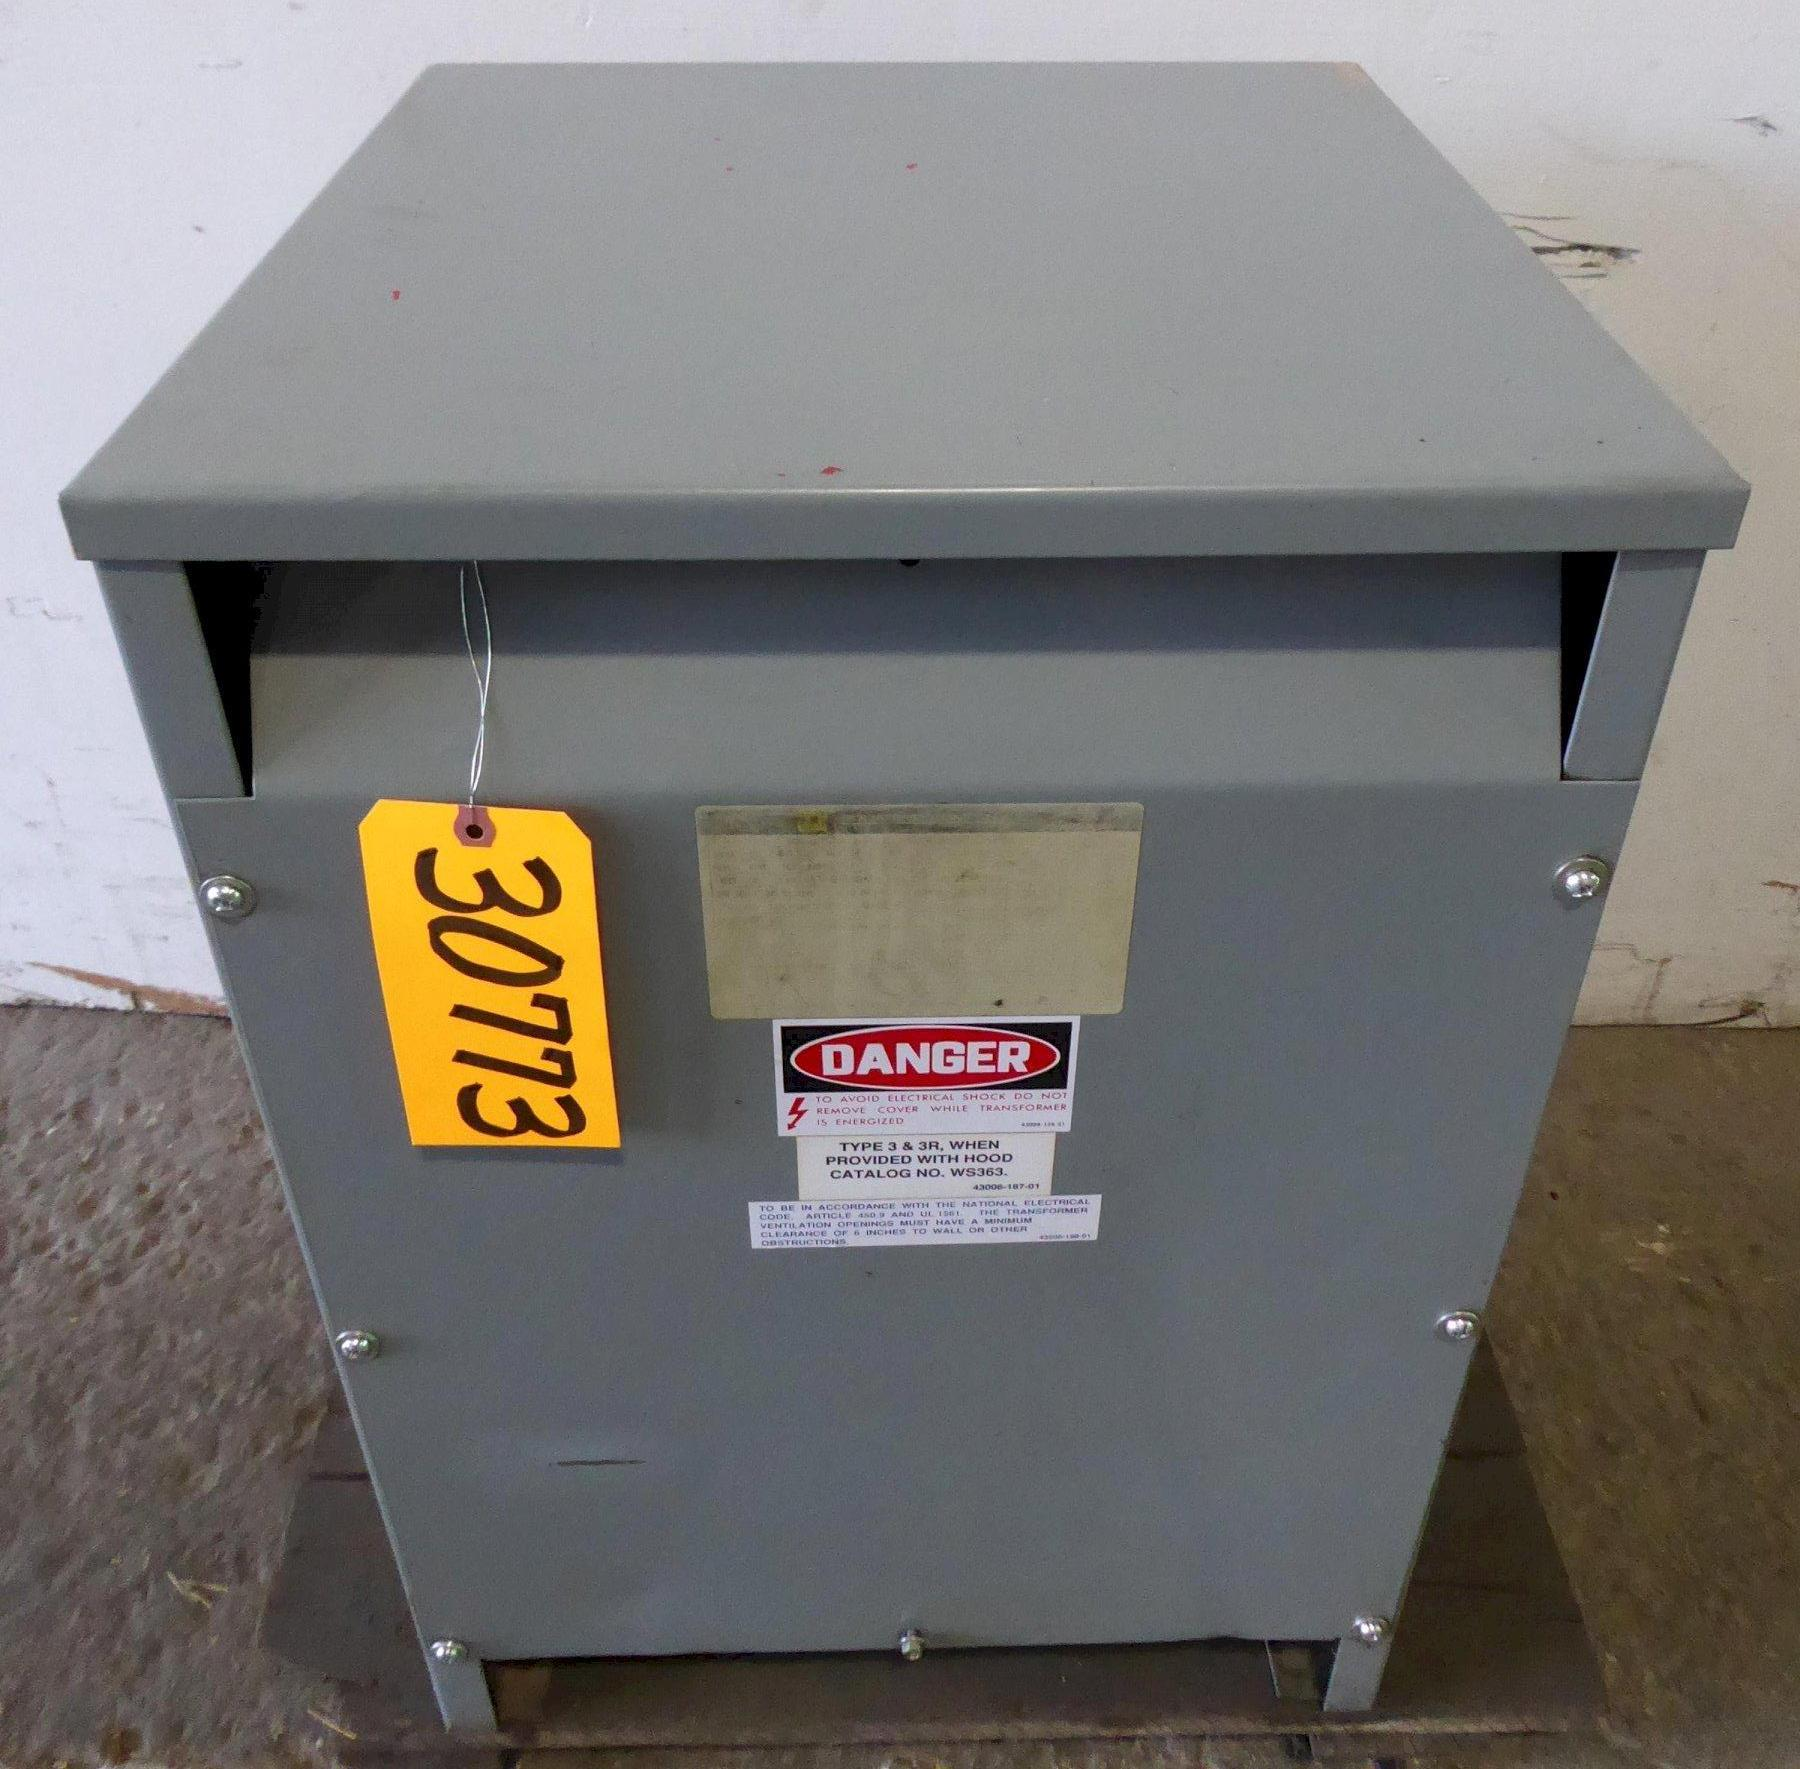 45 KVA Square D Transformer No. 45T6H, H.V: 480, L.V.: 240, 3 Phase